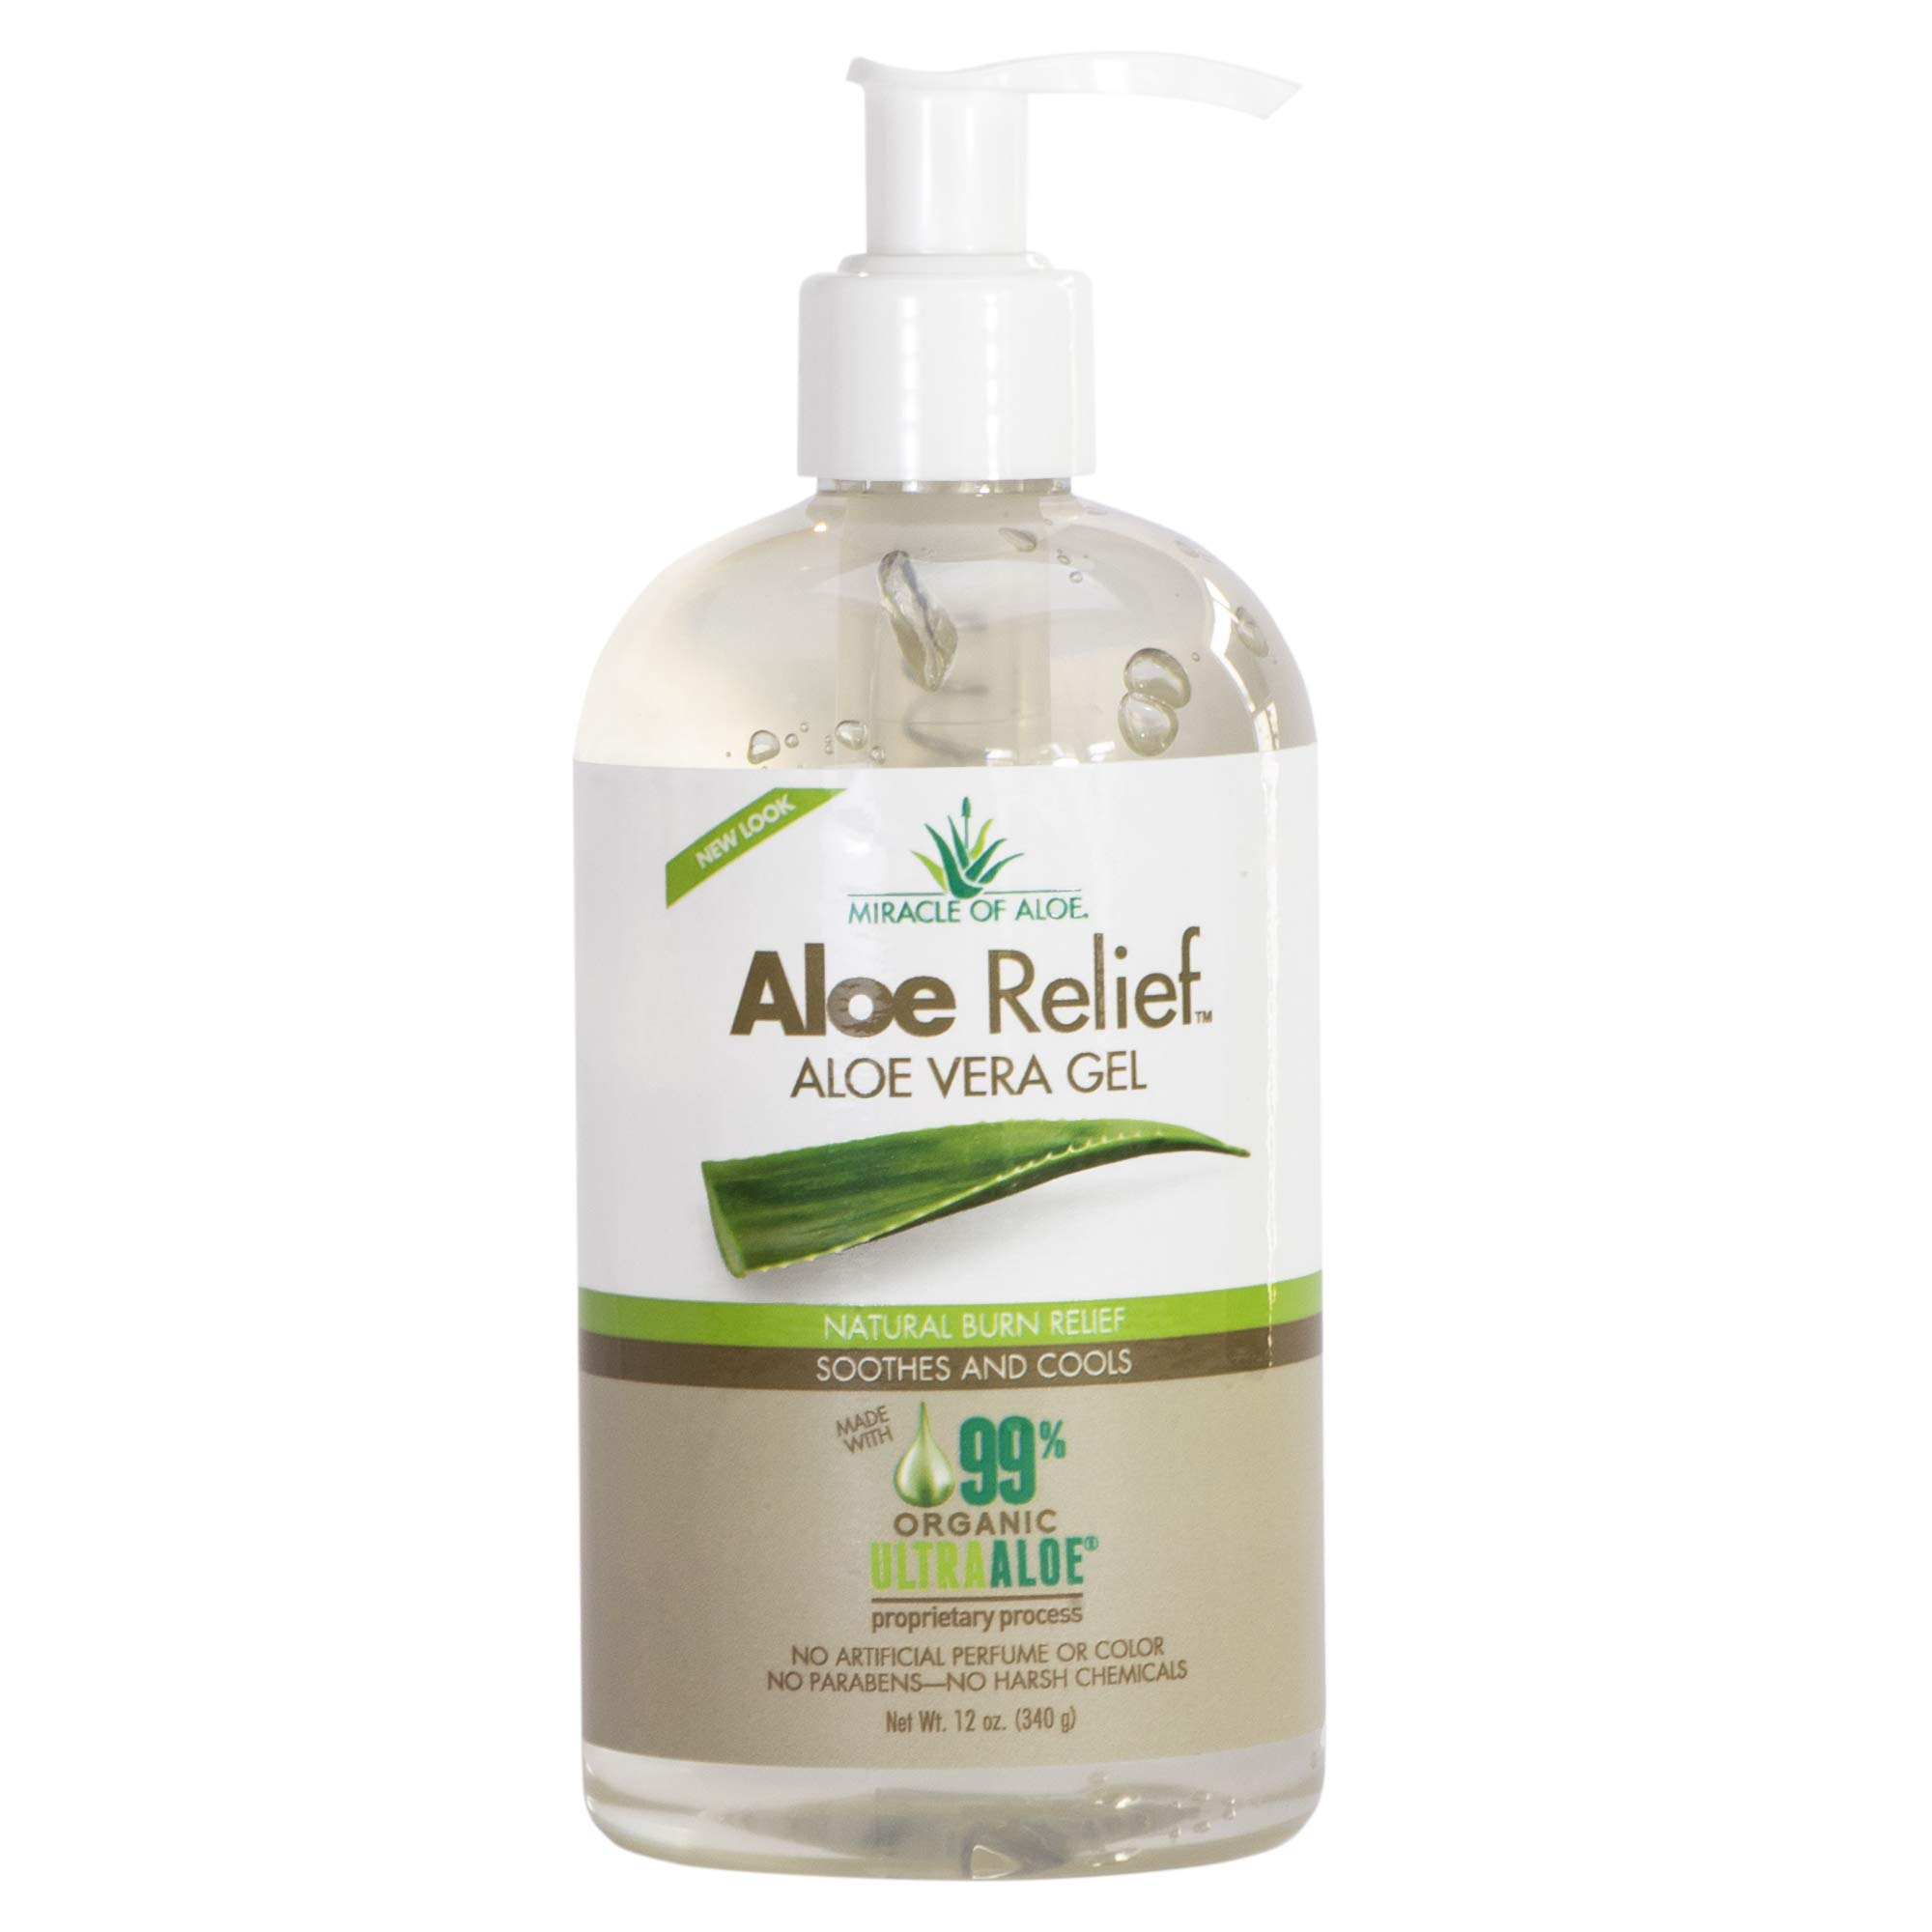 Aloe Relief Aloe Vera Gel 99% Pure Certified Organic made FRESH from the plant with naturally Enhanced UltraAloe Gel | No Parabens | No Fragrance | Cruelty Free | 12 ounce bottle with pump.